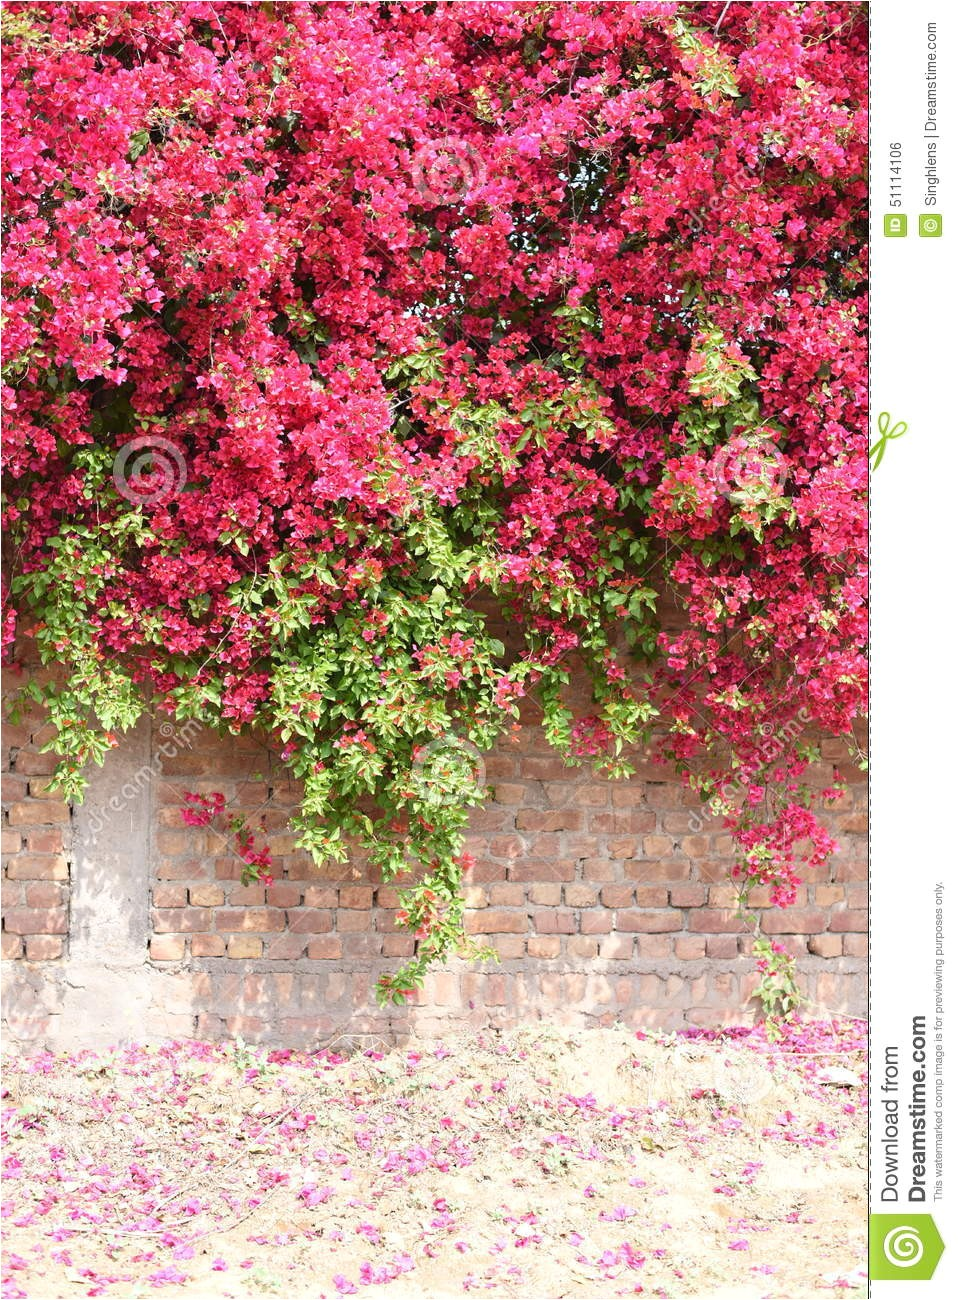 stock photo colorful bougainvillea full bloom concrete brick wall flower image51114106